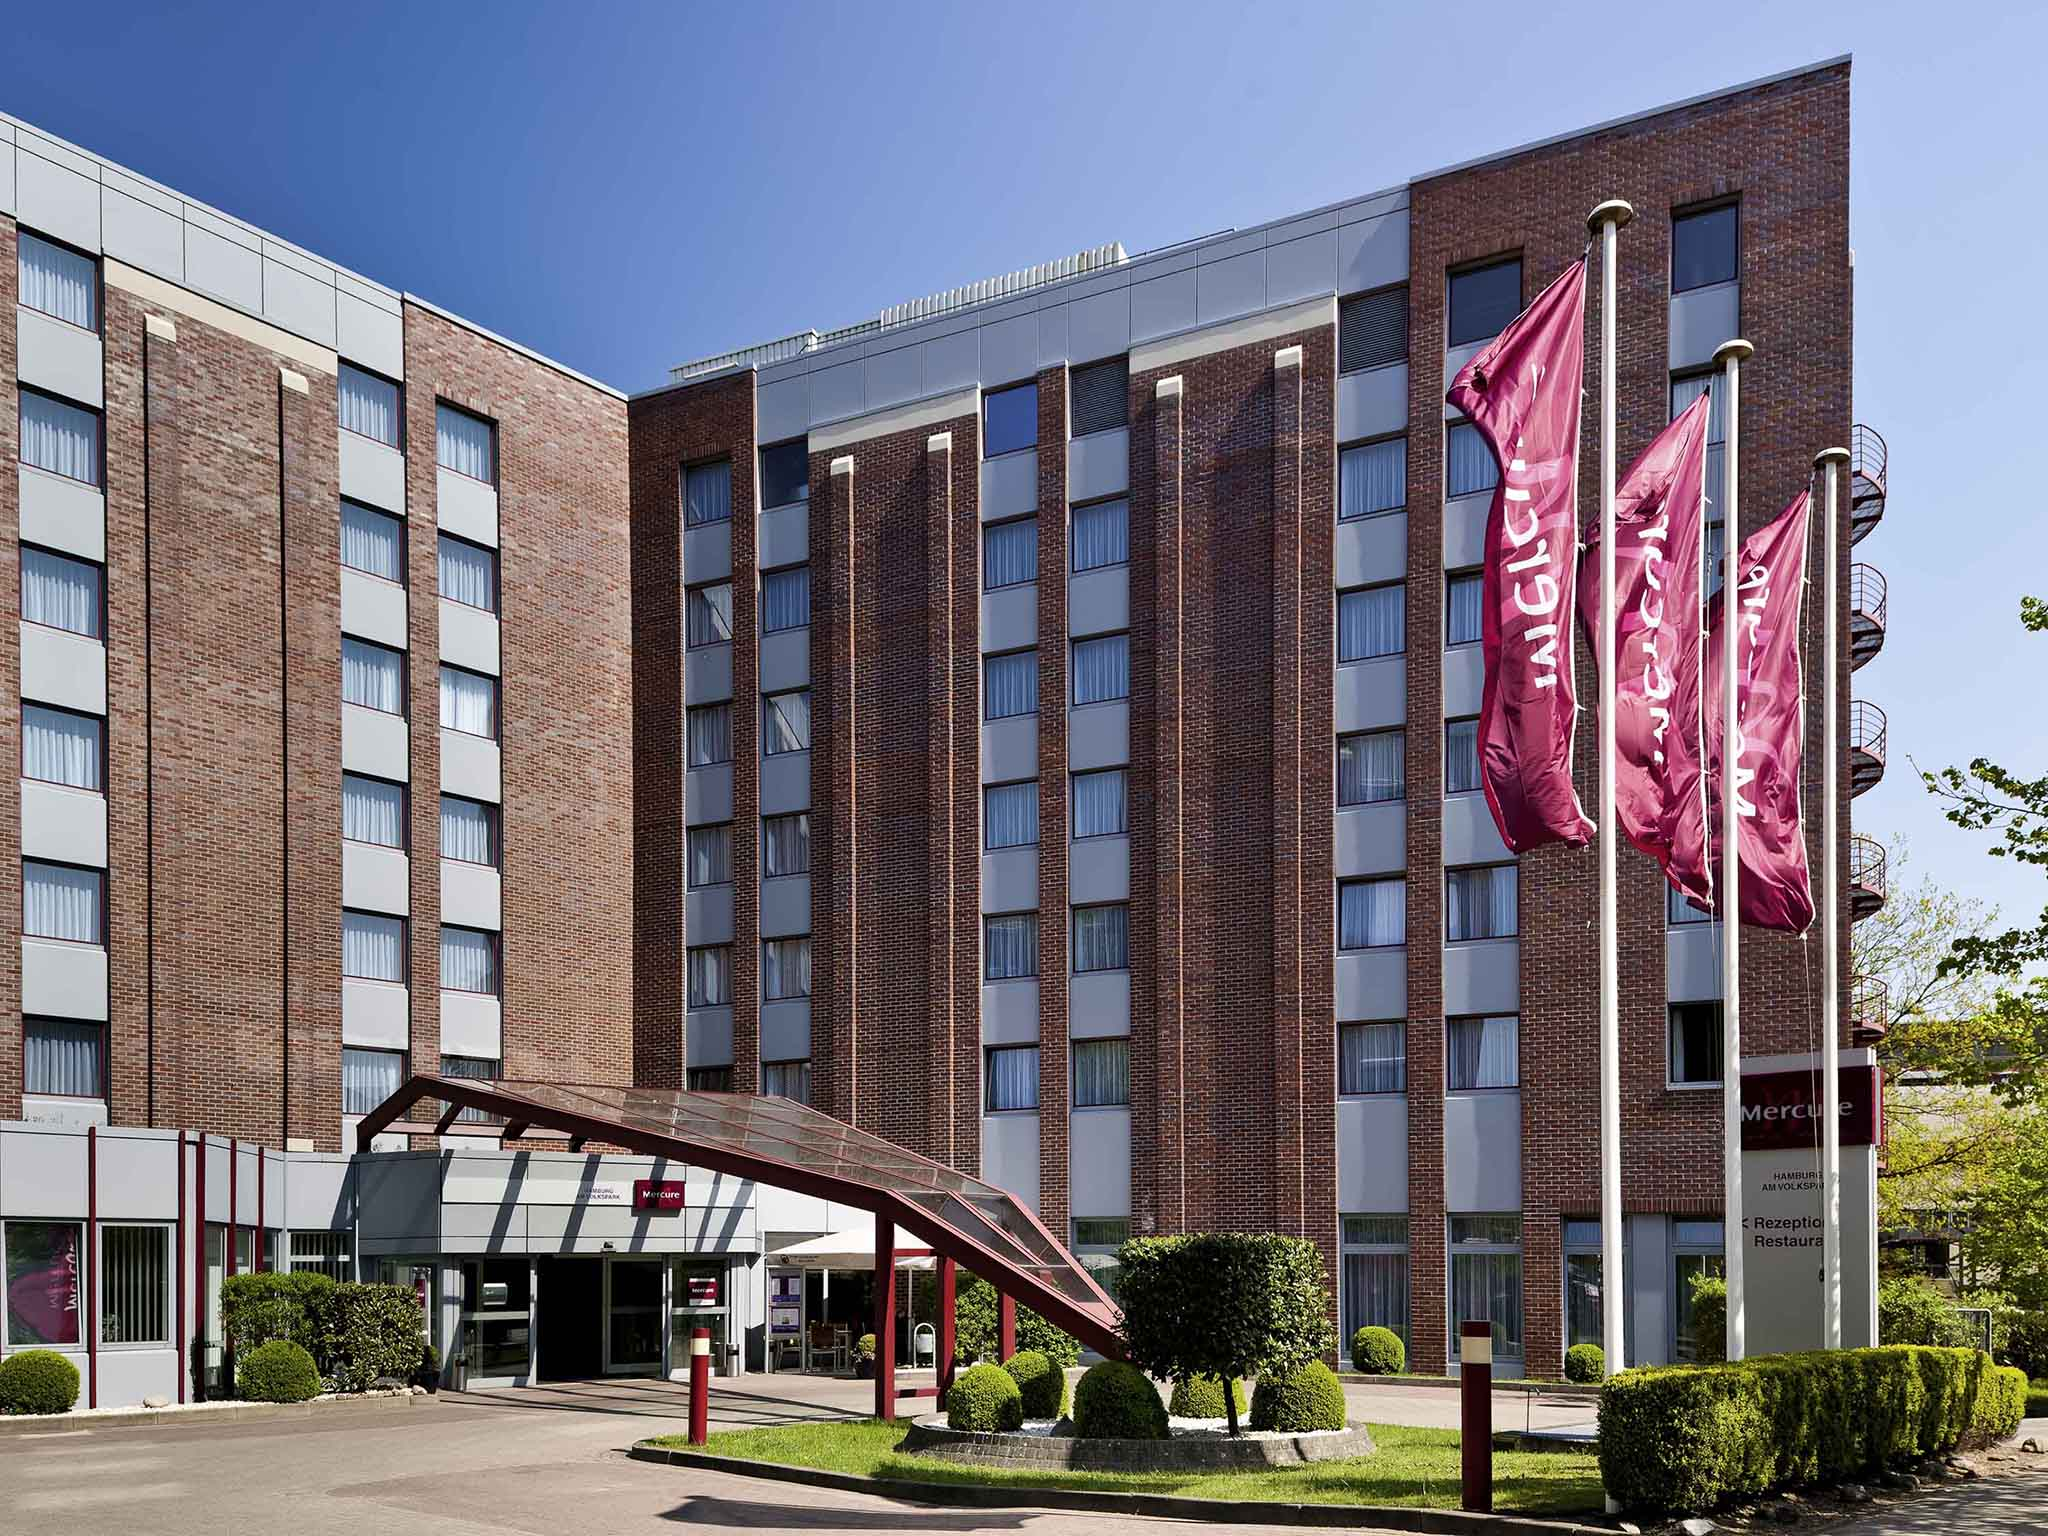 Mercure hotel hamburg am volkspark book now ex novotel for Hotel hamburg